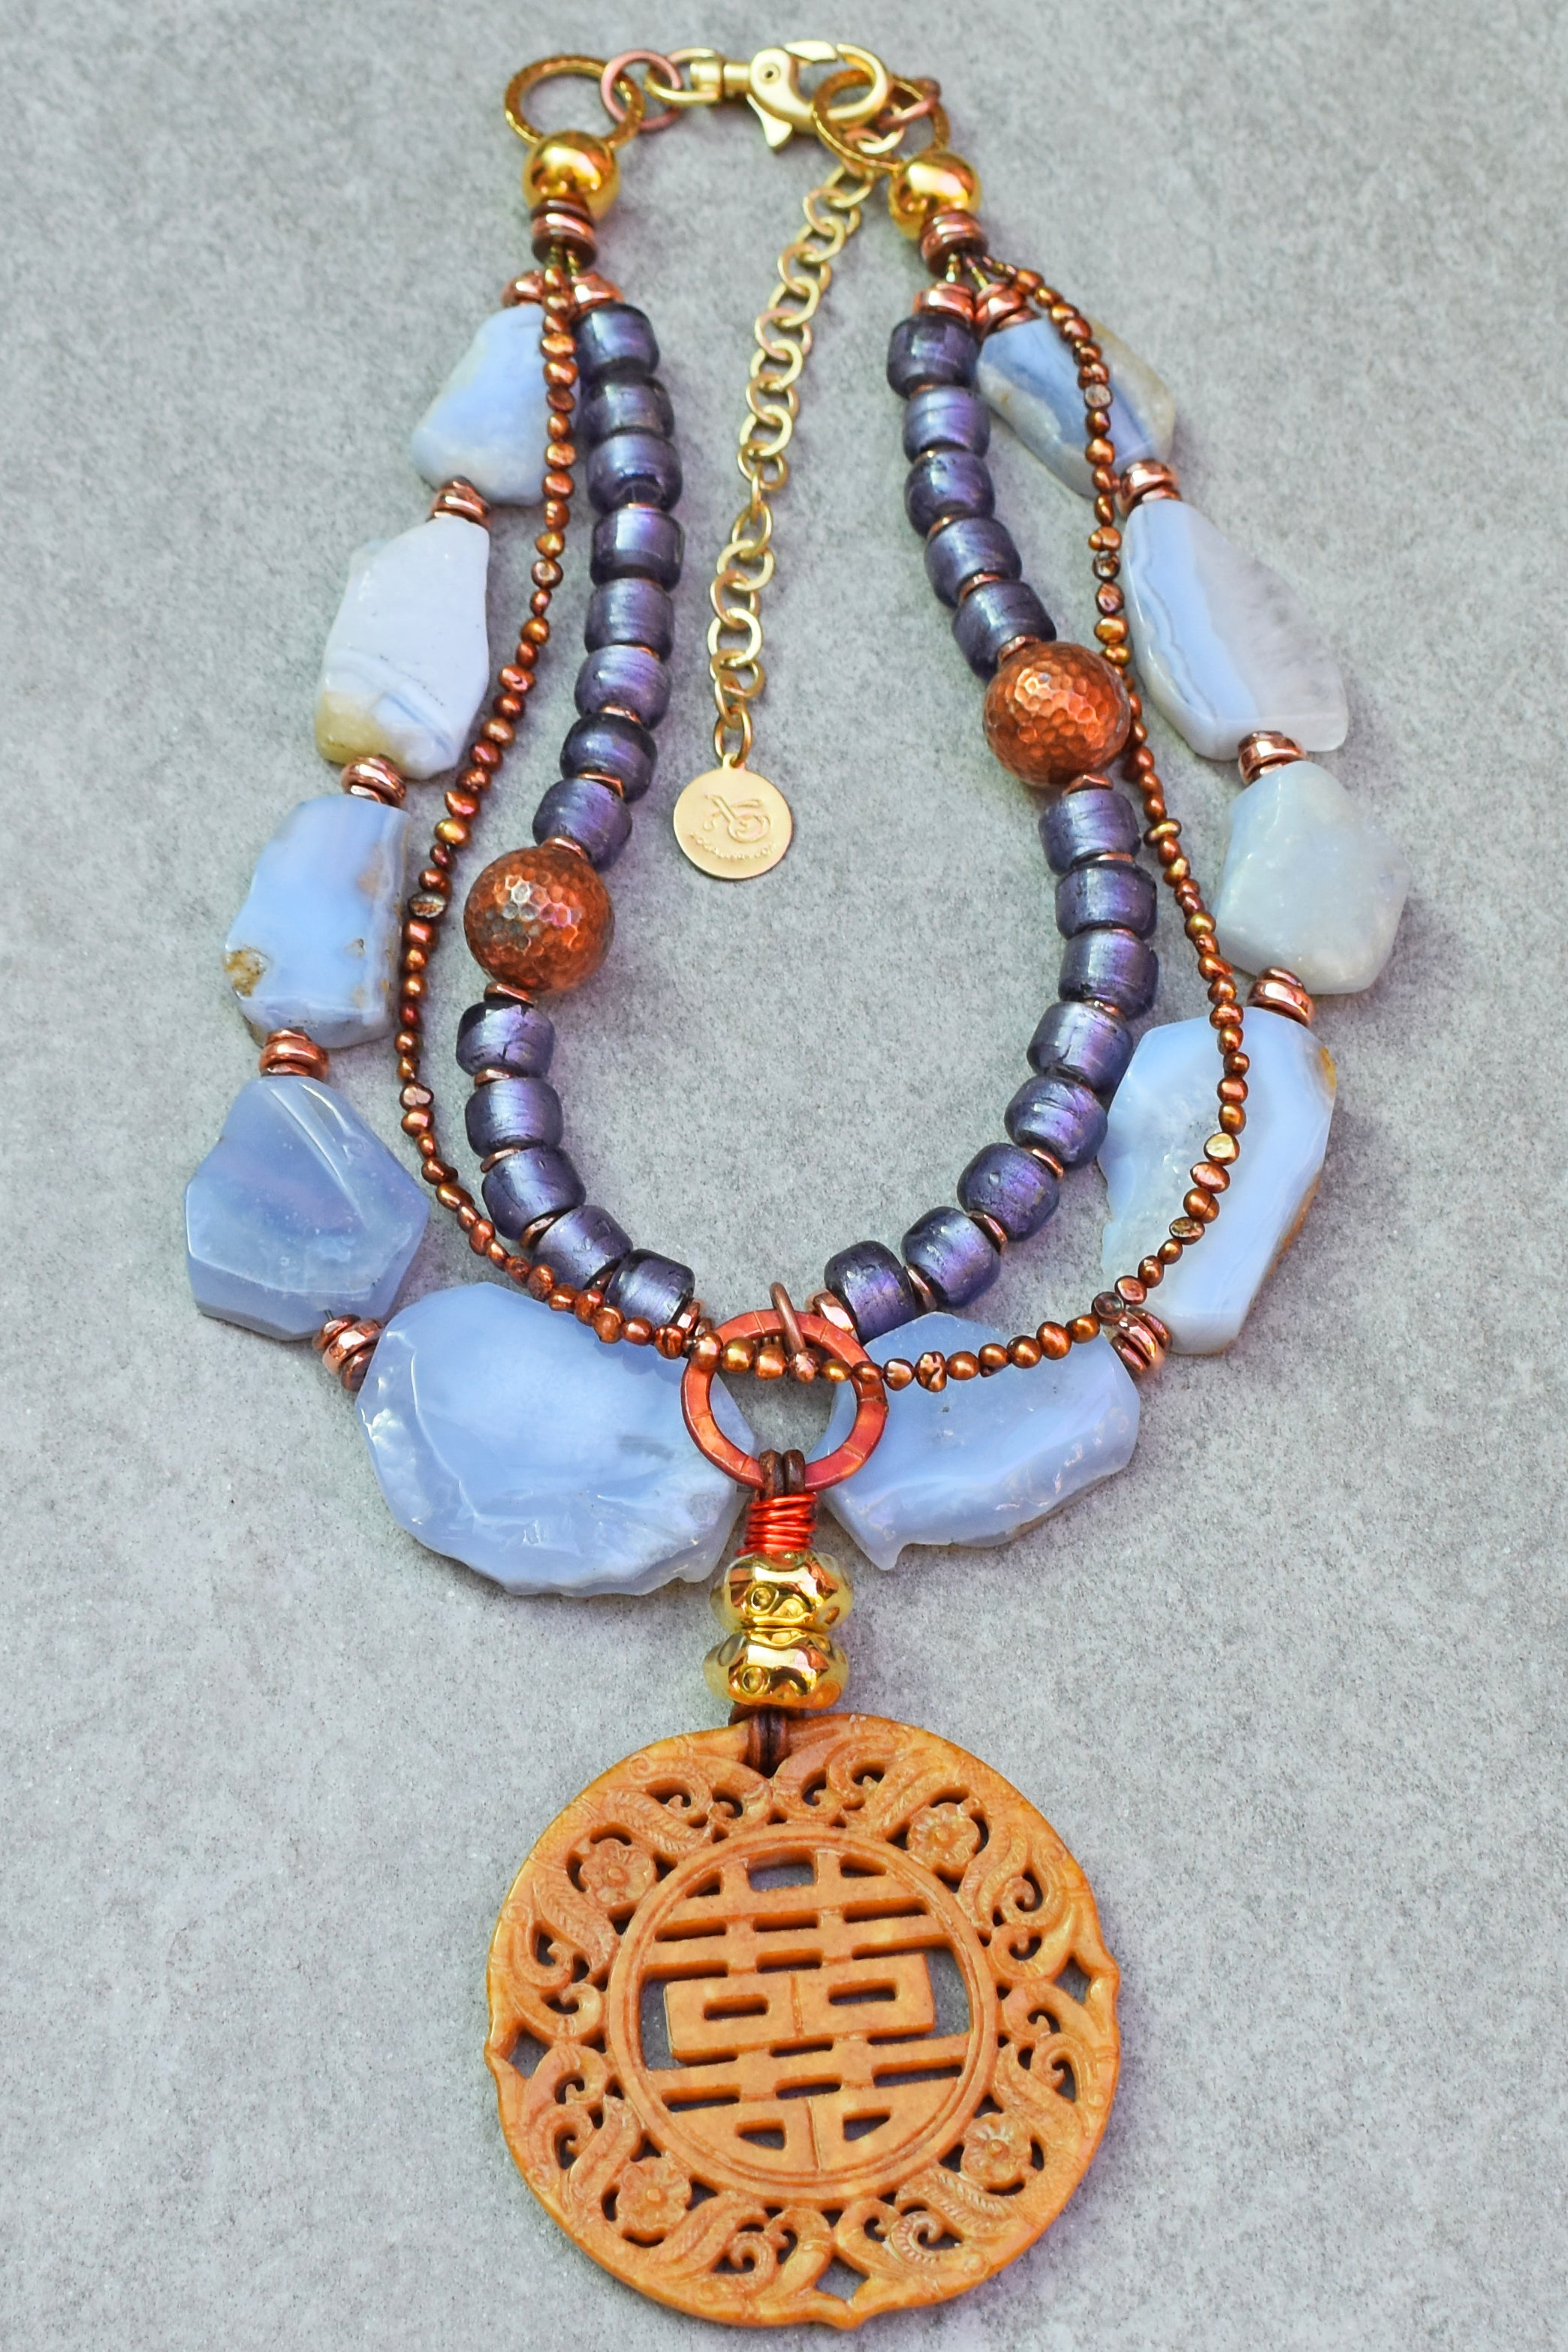 https://www.xogallery.com/collections/new/products/enchanting-blue-chalcedony-purple-copper-and-carved-jade-necklace